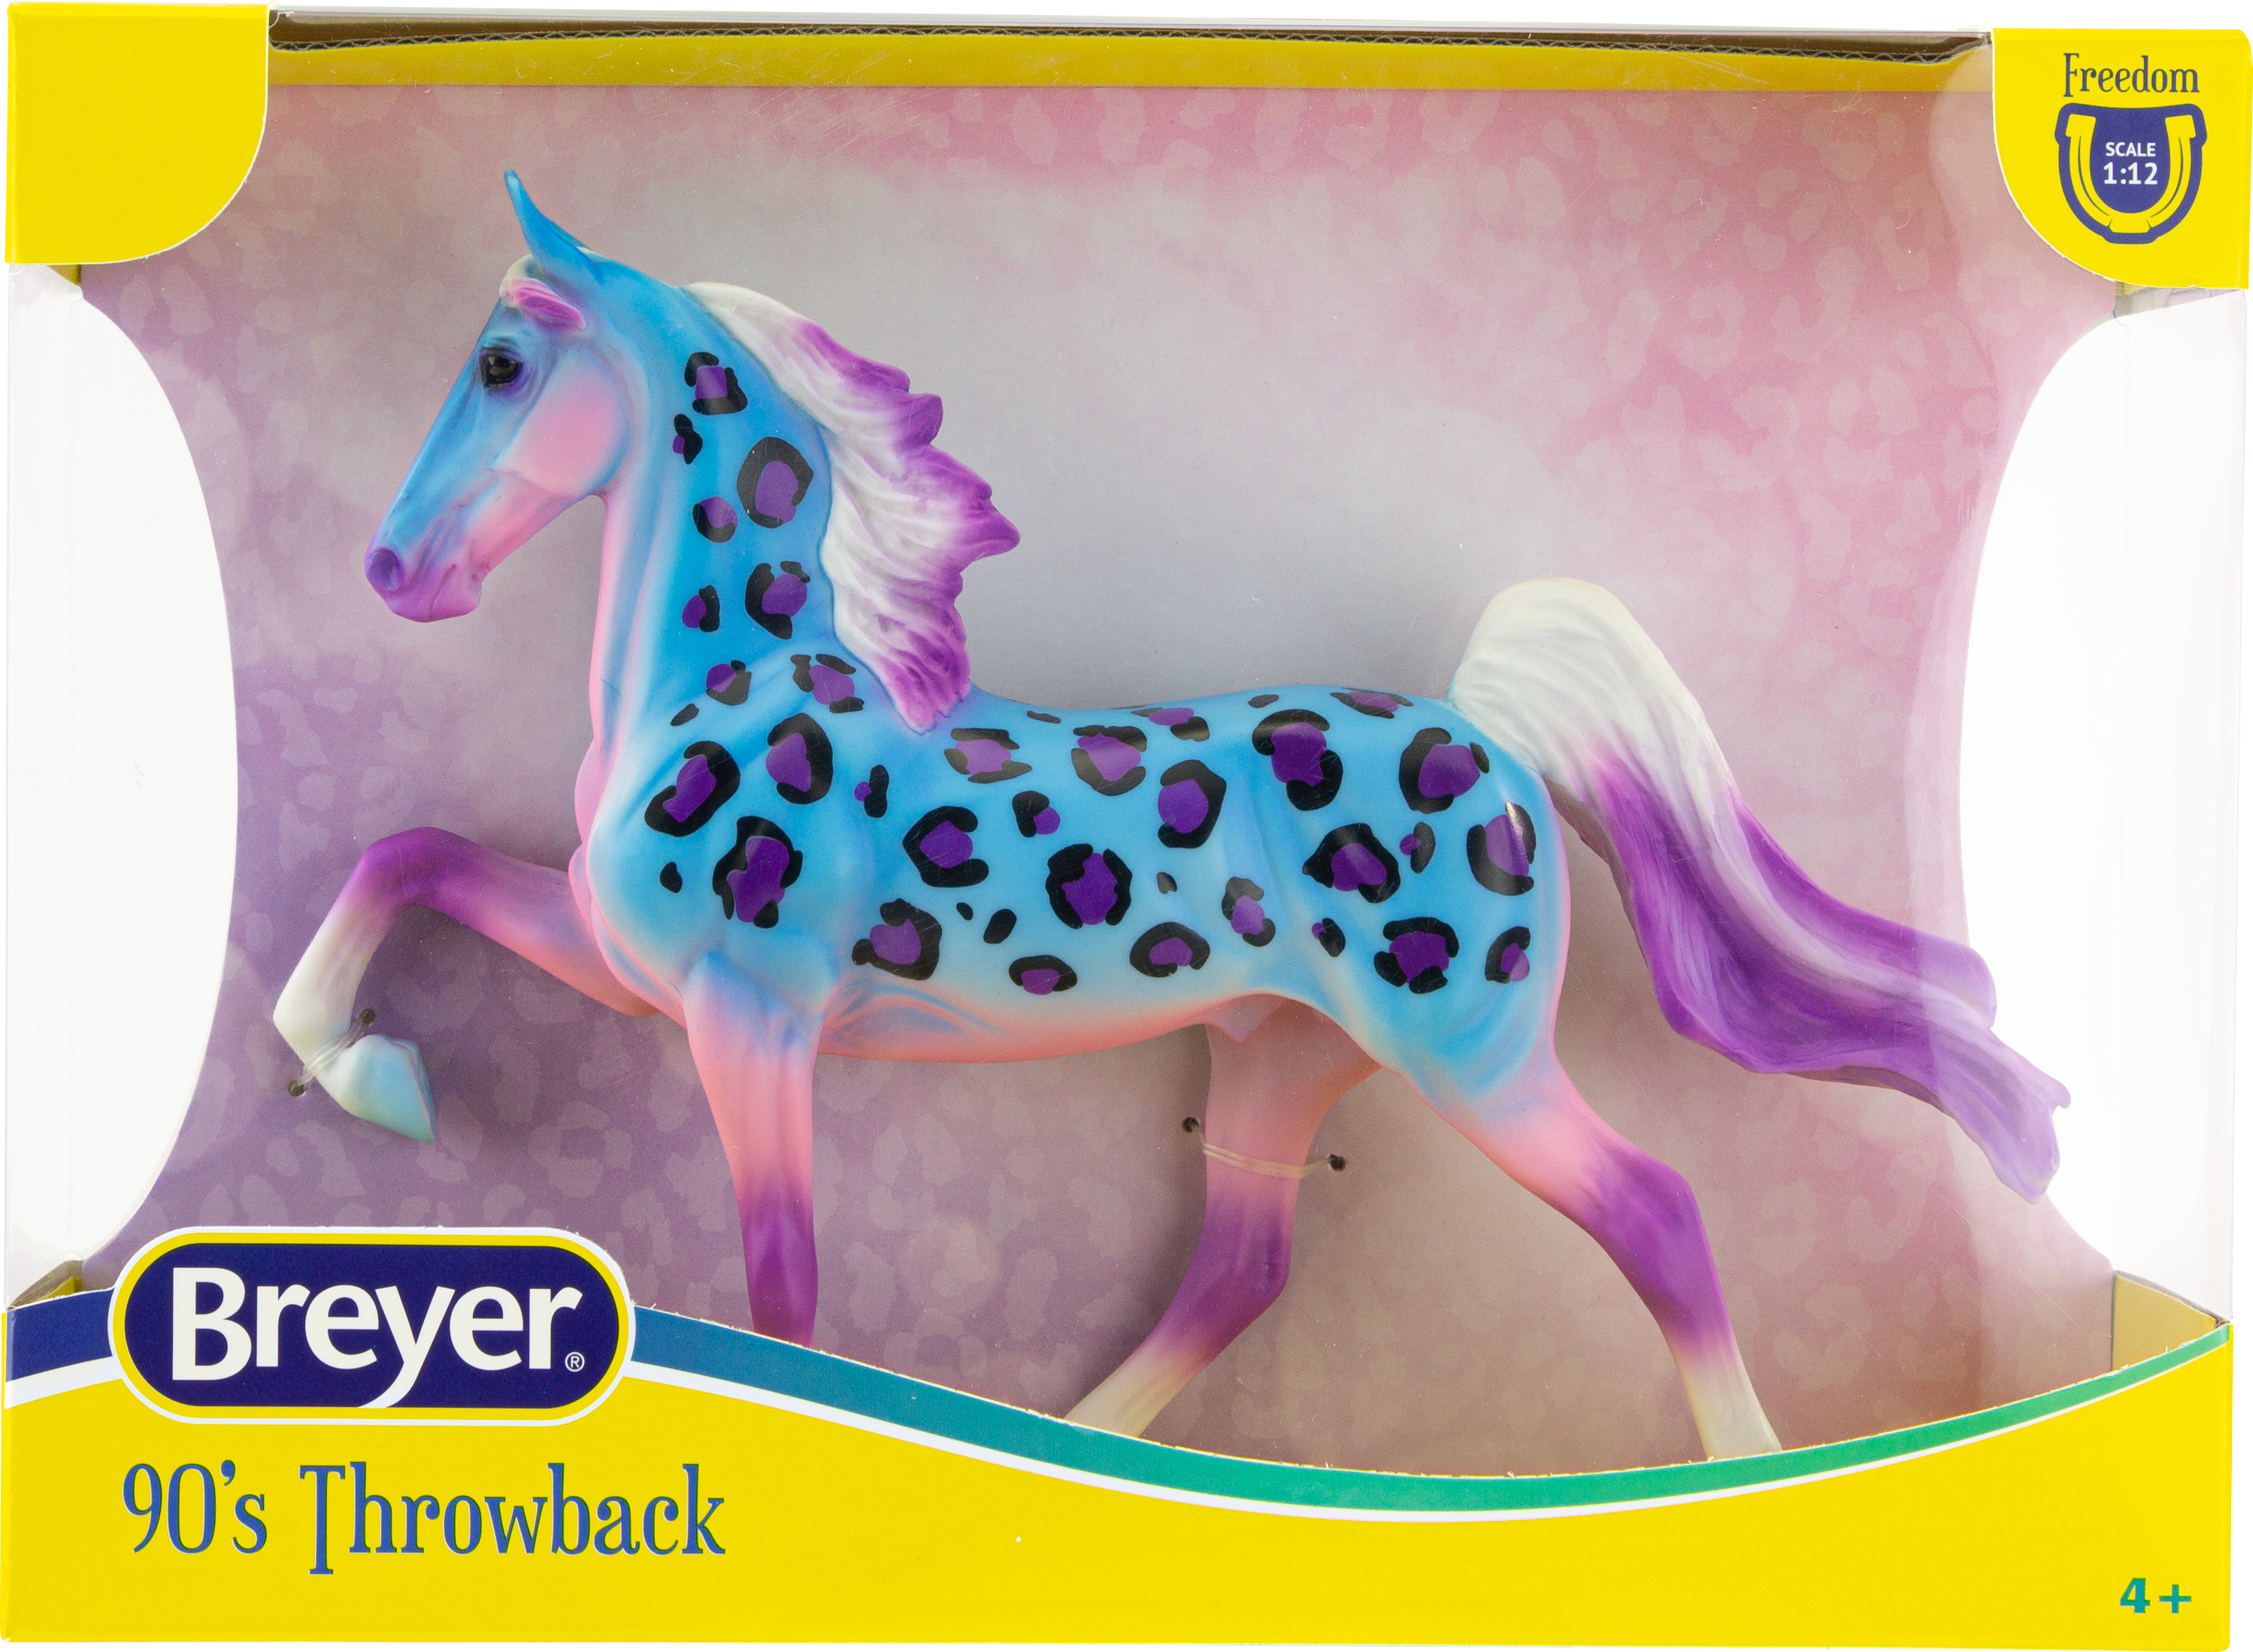 Breyer Classic 90's Throwback #62221